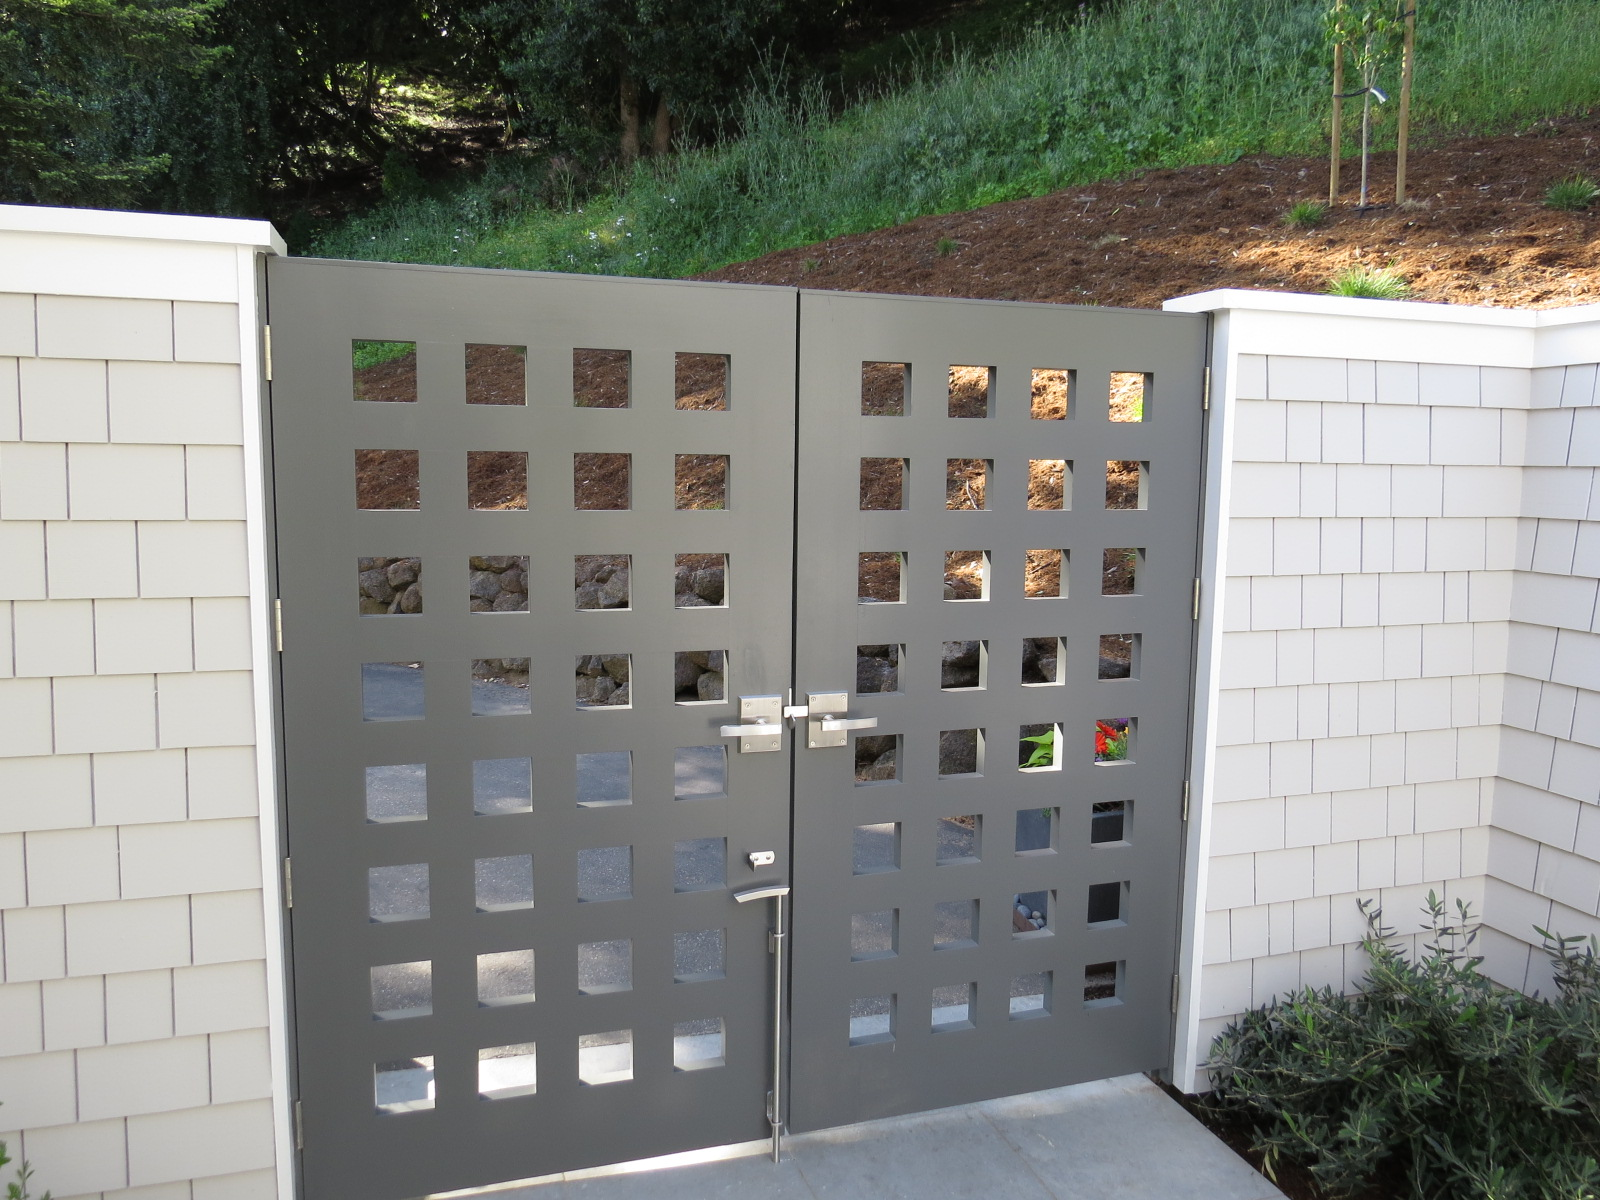 brushed-stainless-alta-contemporary-gate-latch-on-double-gate.jpg